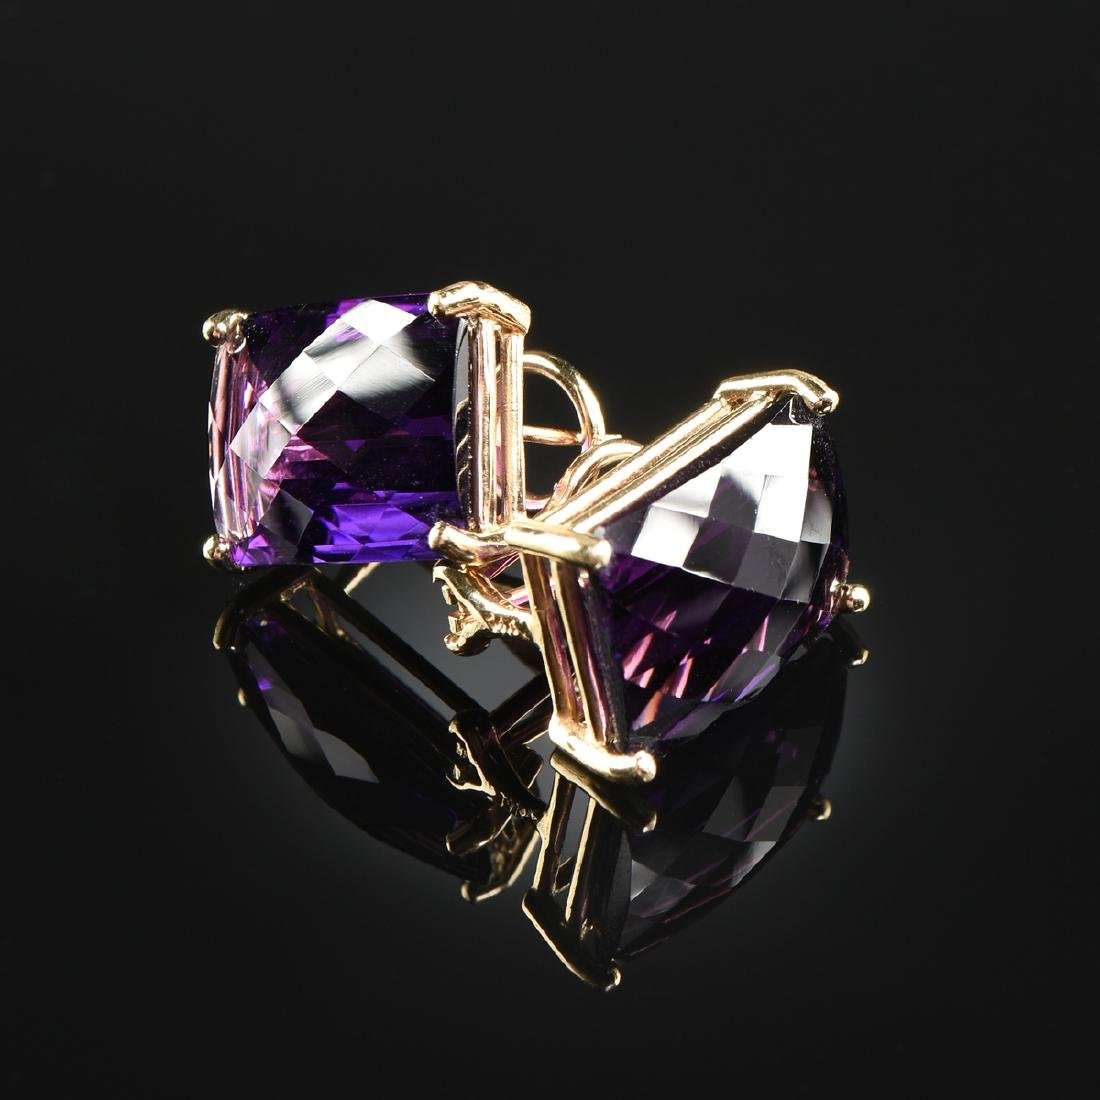 A PAIR OF 14K YELLOW GOLD AND AMETHYST LADY'S EARRINGS,